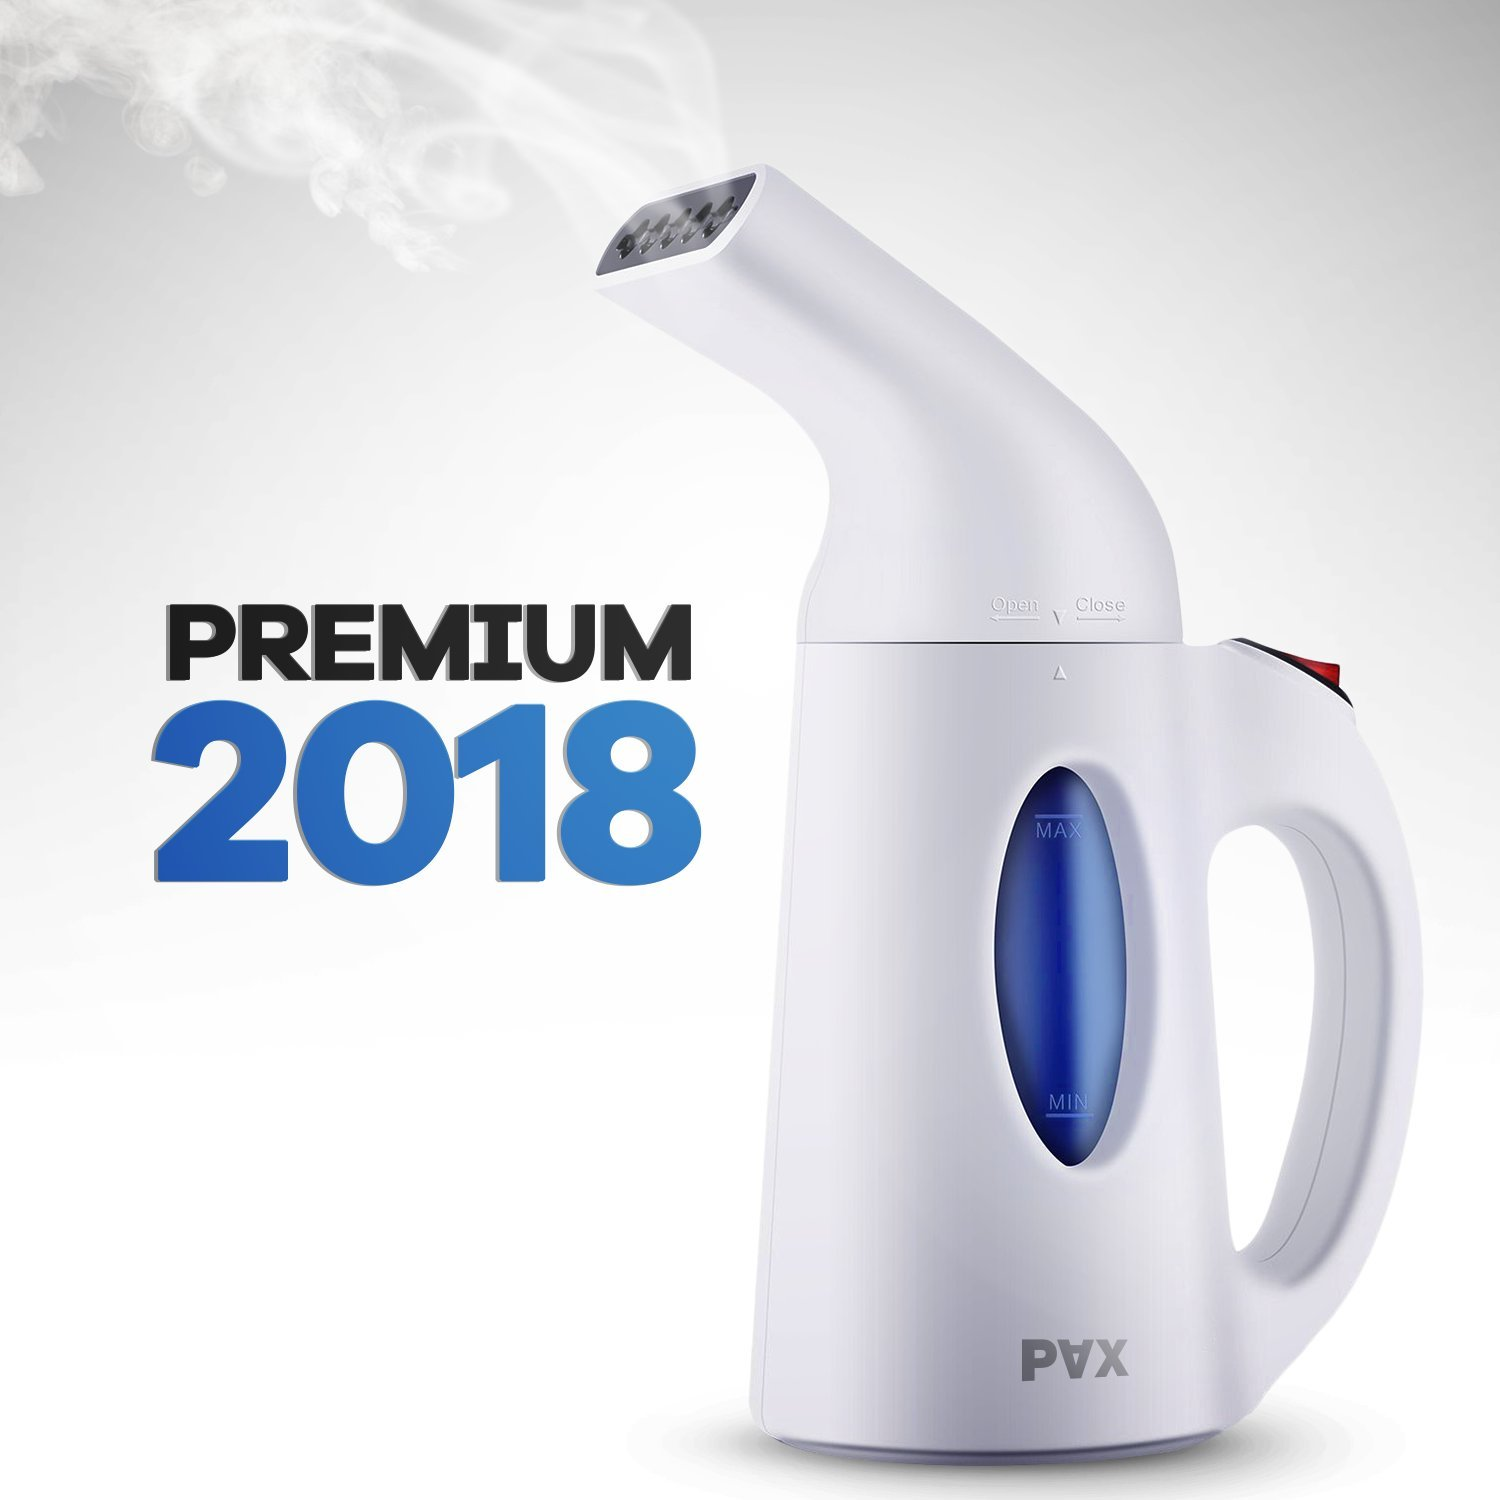 clothes steamer 2018 Powerful, Travel and Home Handheld Garment Steamer, 60 Seconds Heat-Up, Fabric Steamer With Automatic Shut-Off Safety Protection (PAX) H-106